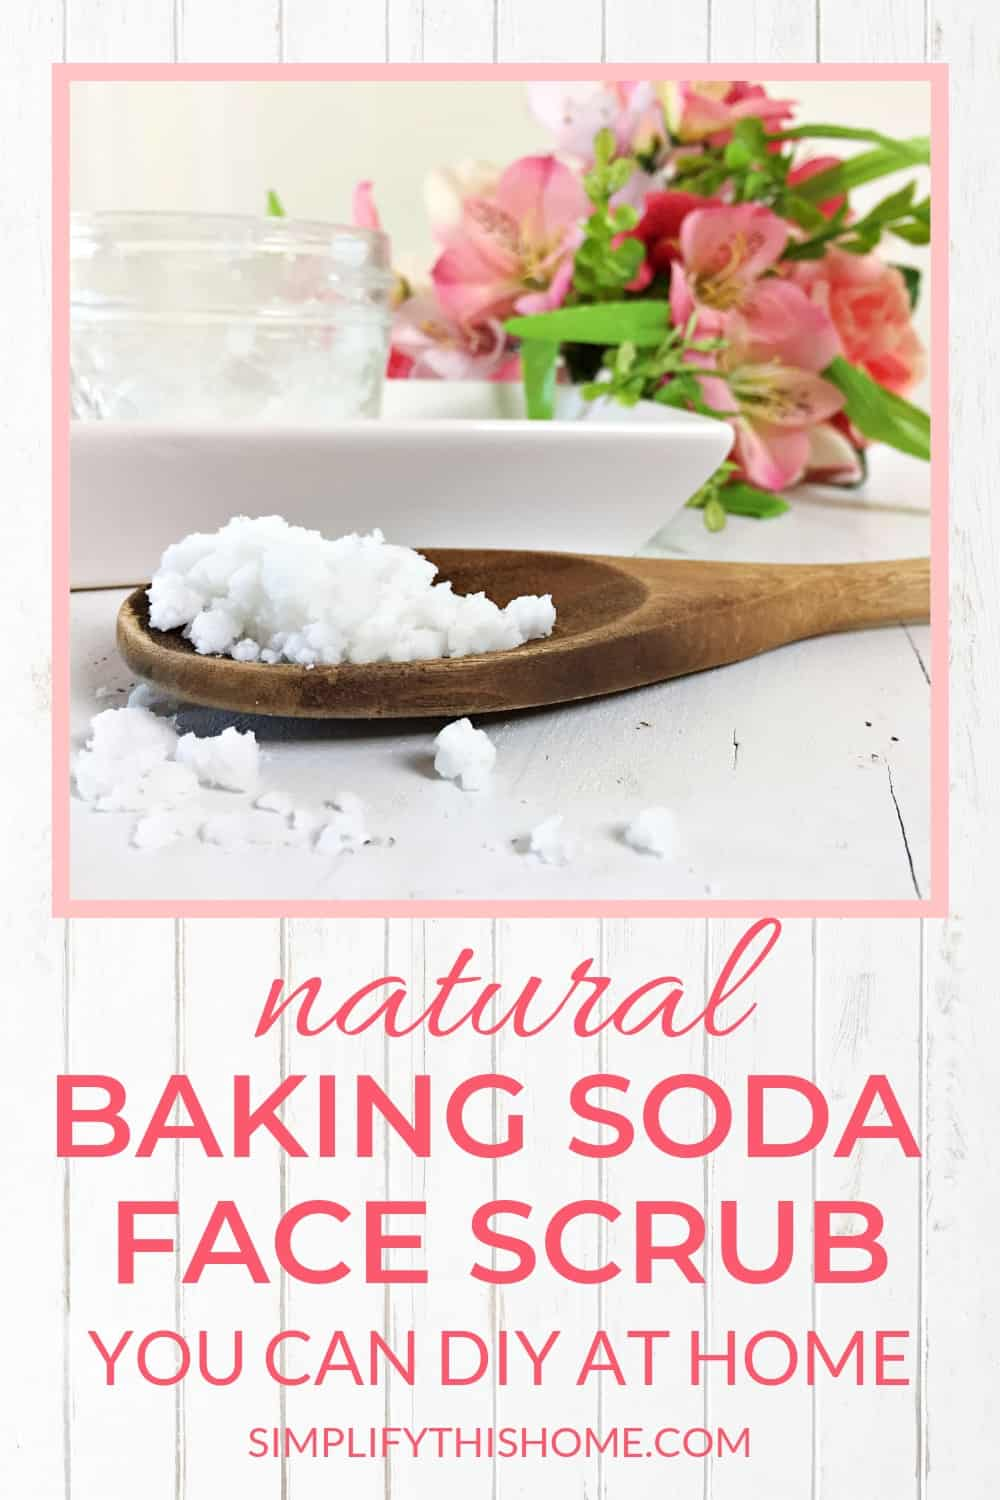 Natural baking soda face scrub you can make at home